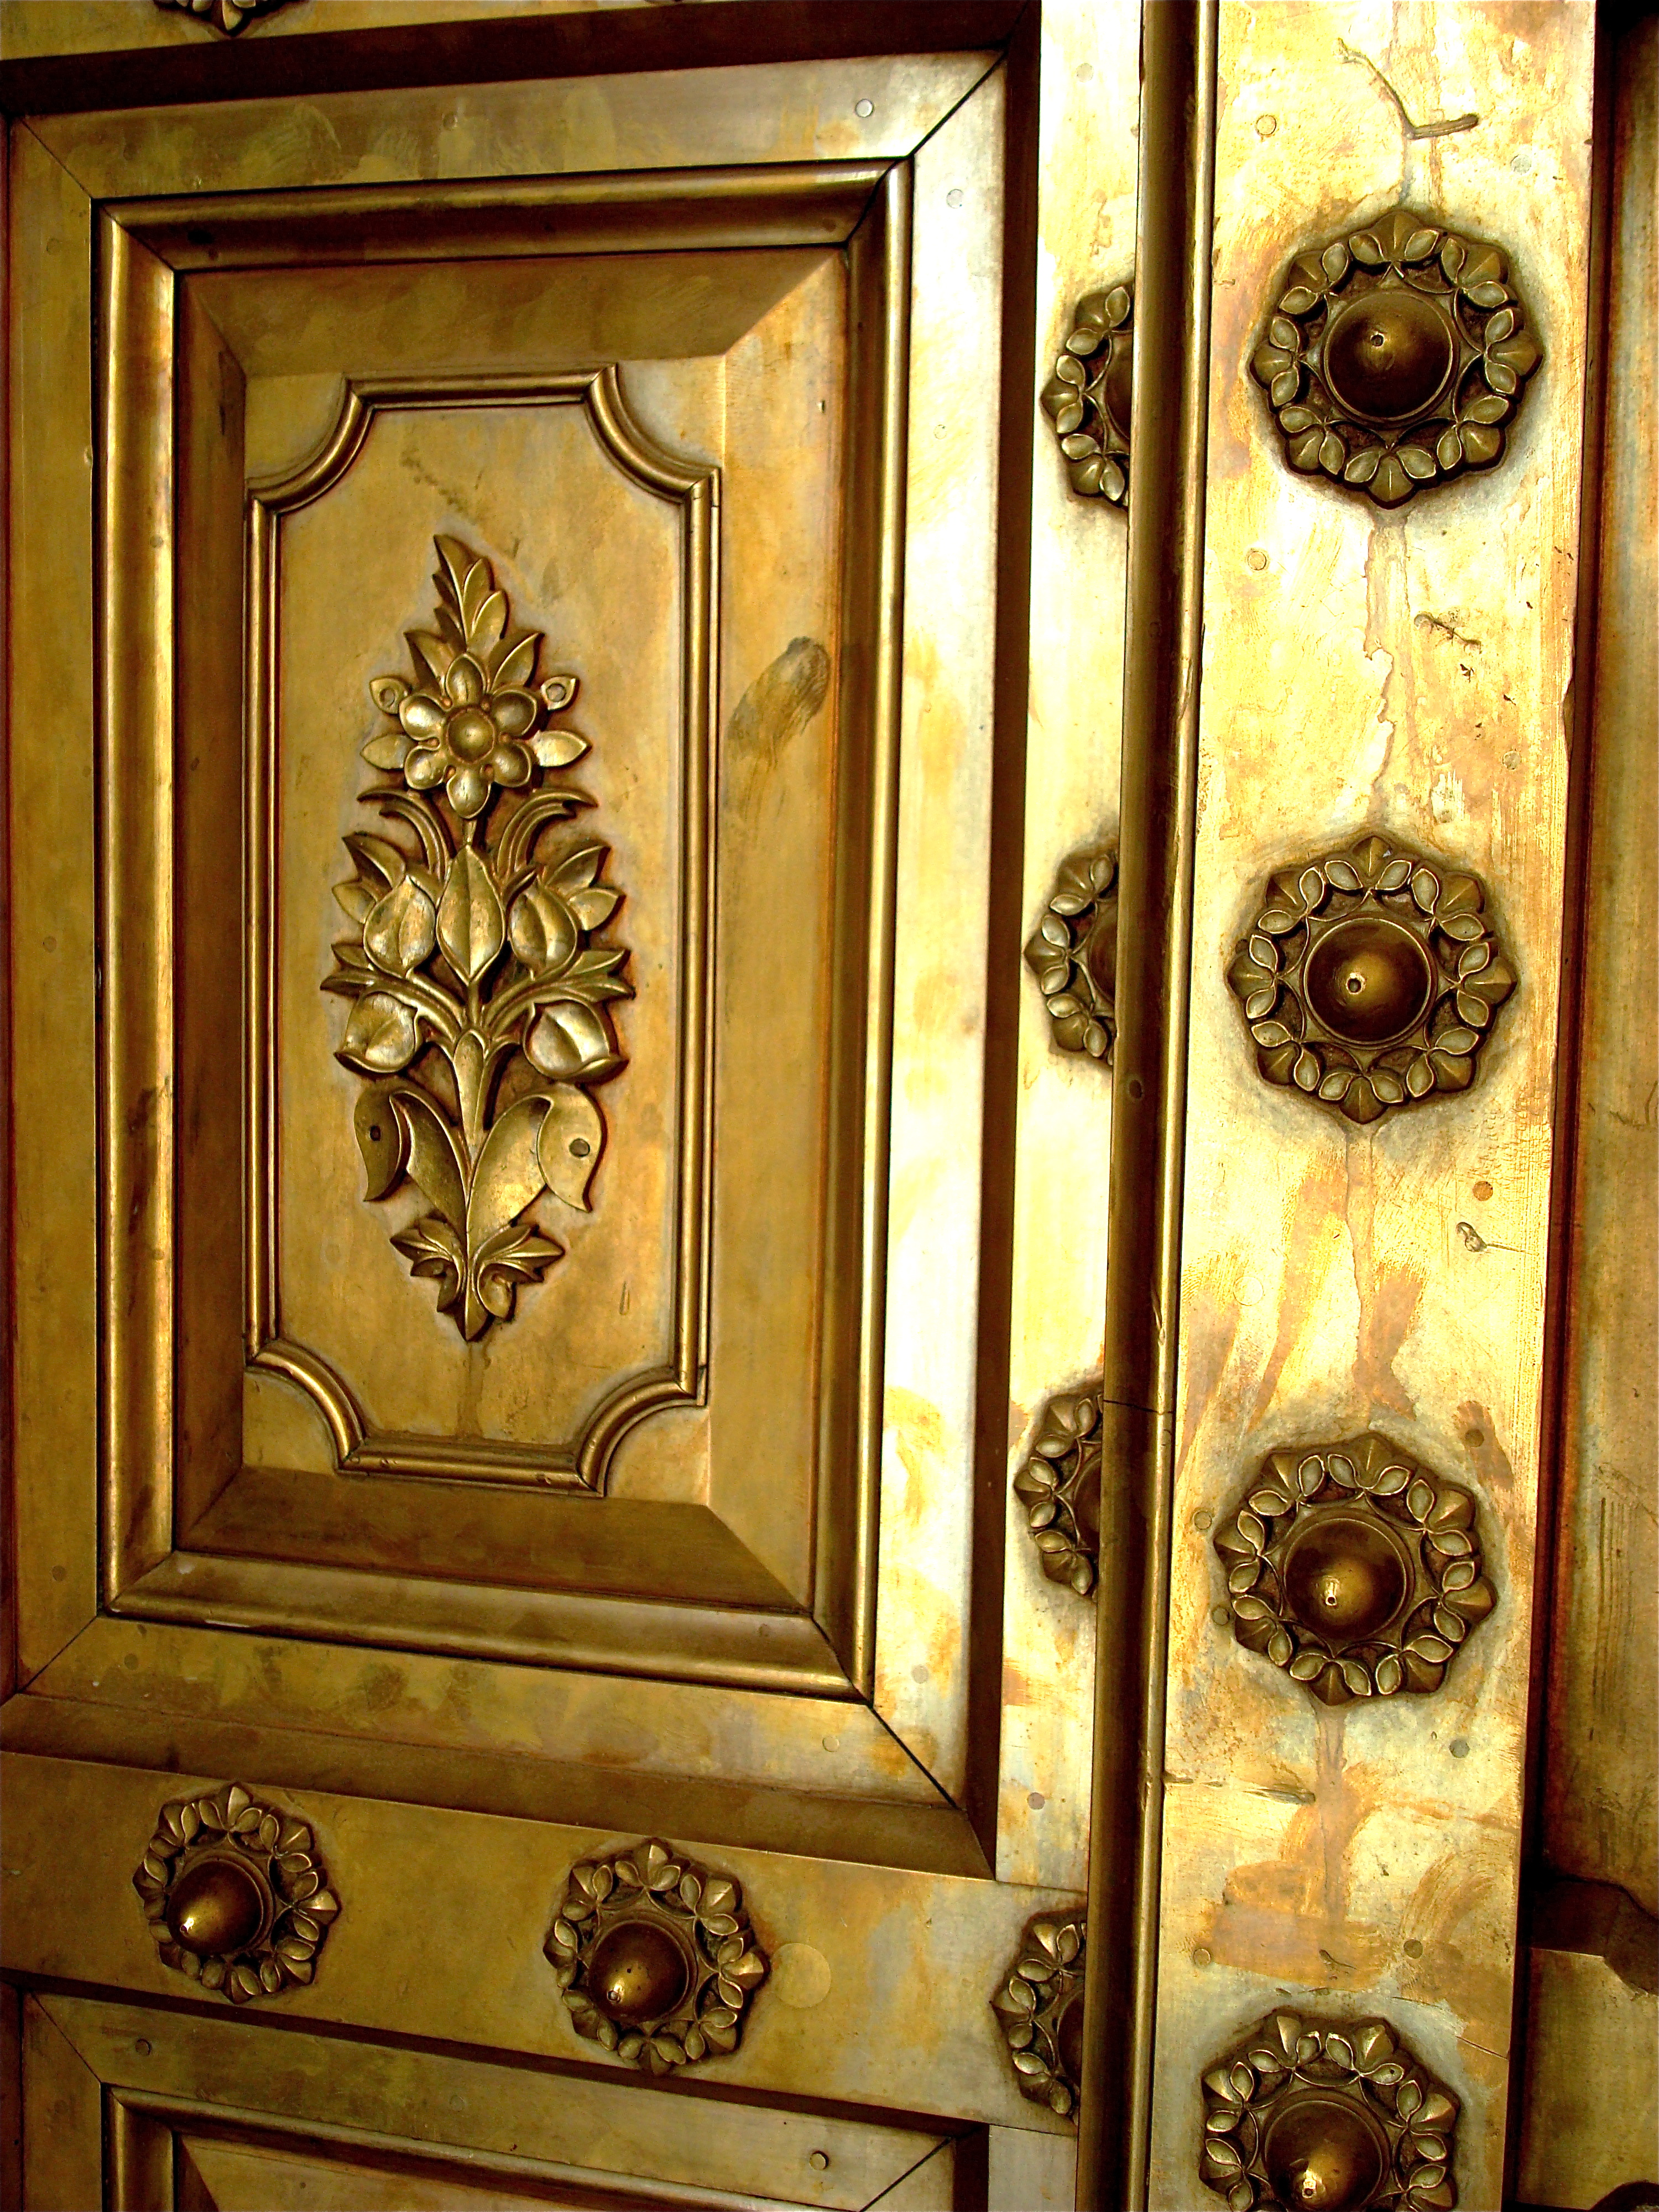 FileBrass door at City Palace Jaipur.jpg & File:Brass door at City Palace Jaipur.jpg - Wikimedia Commons